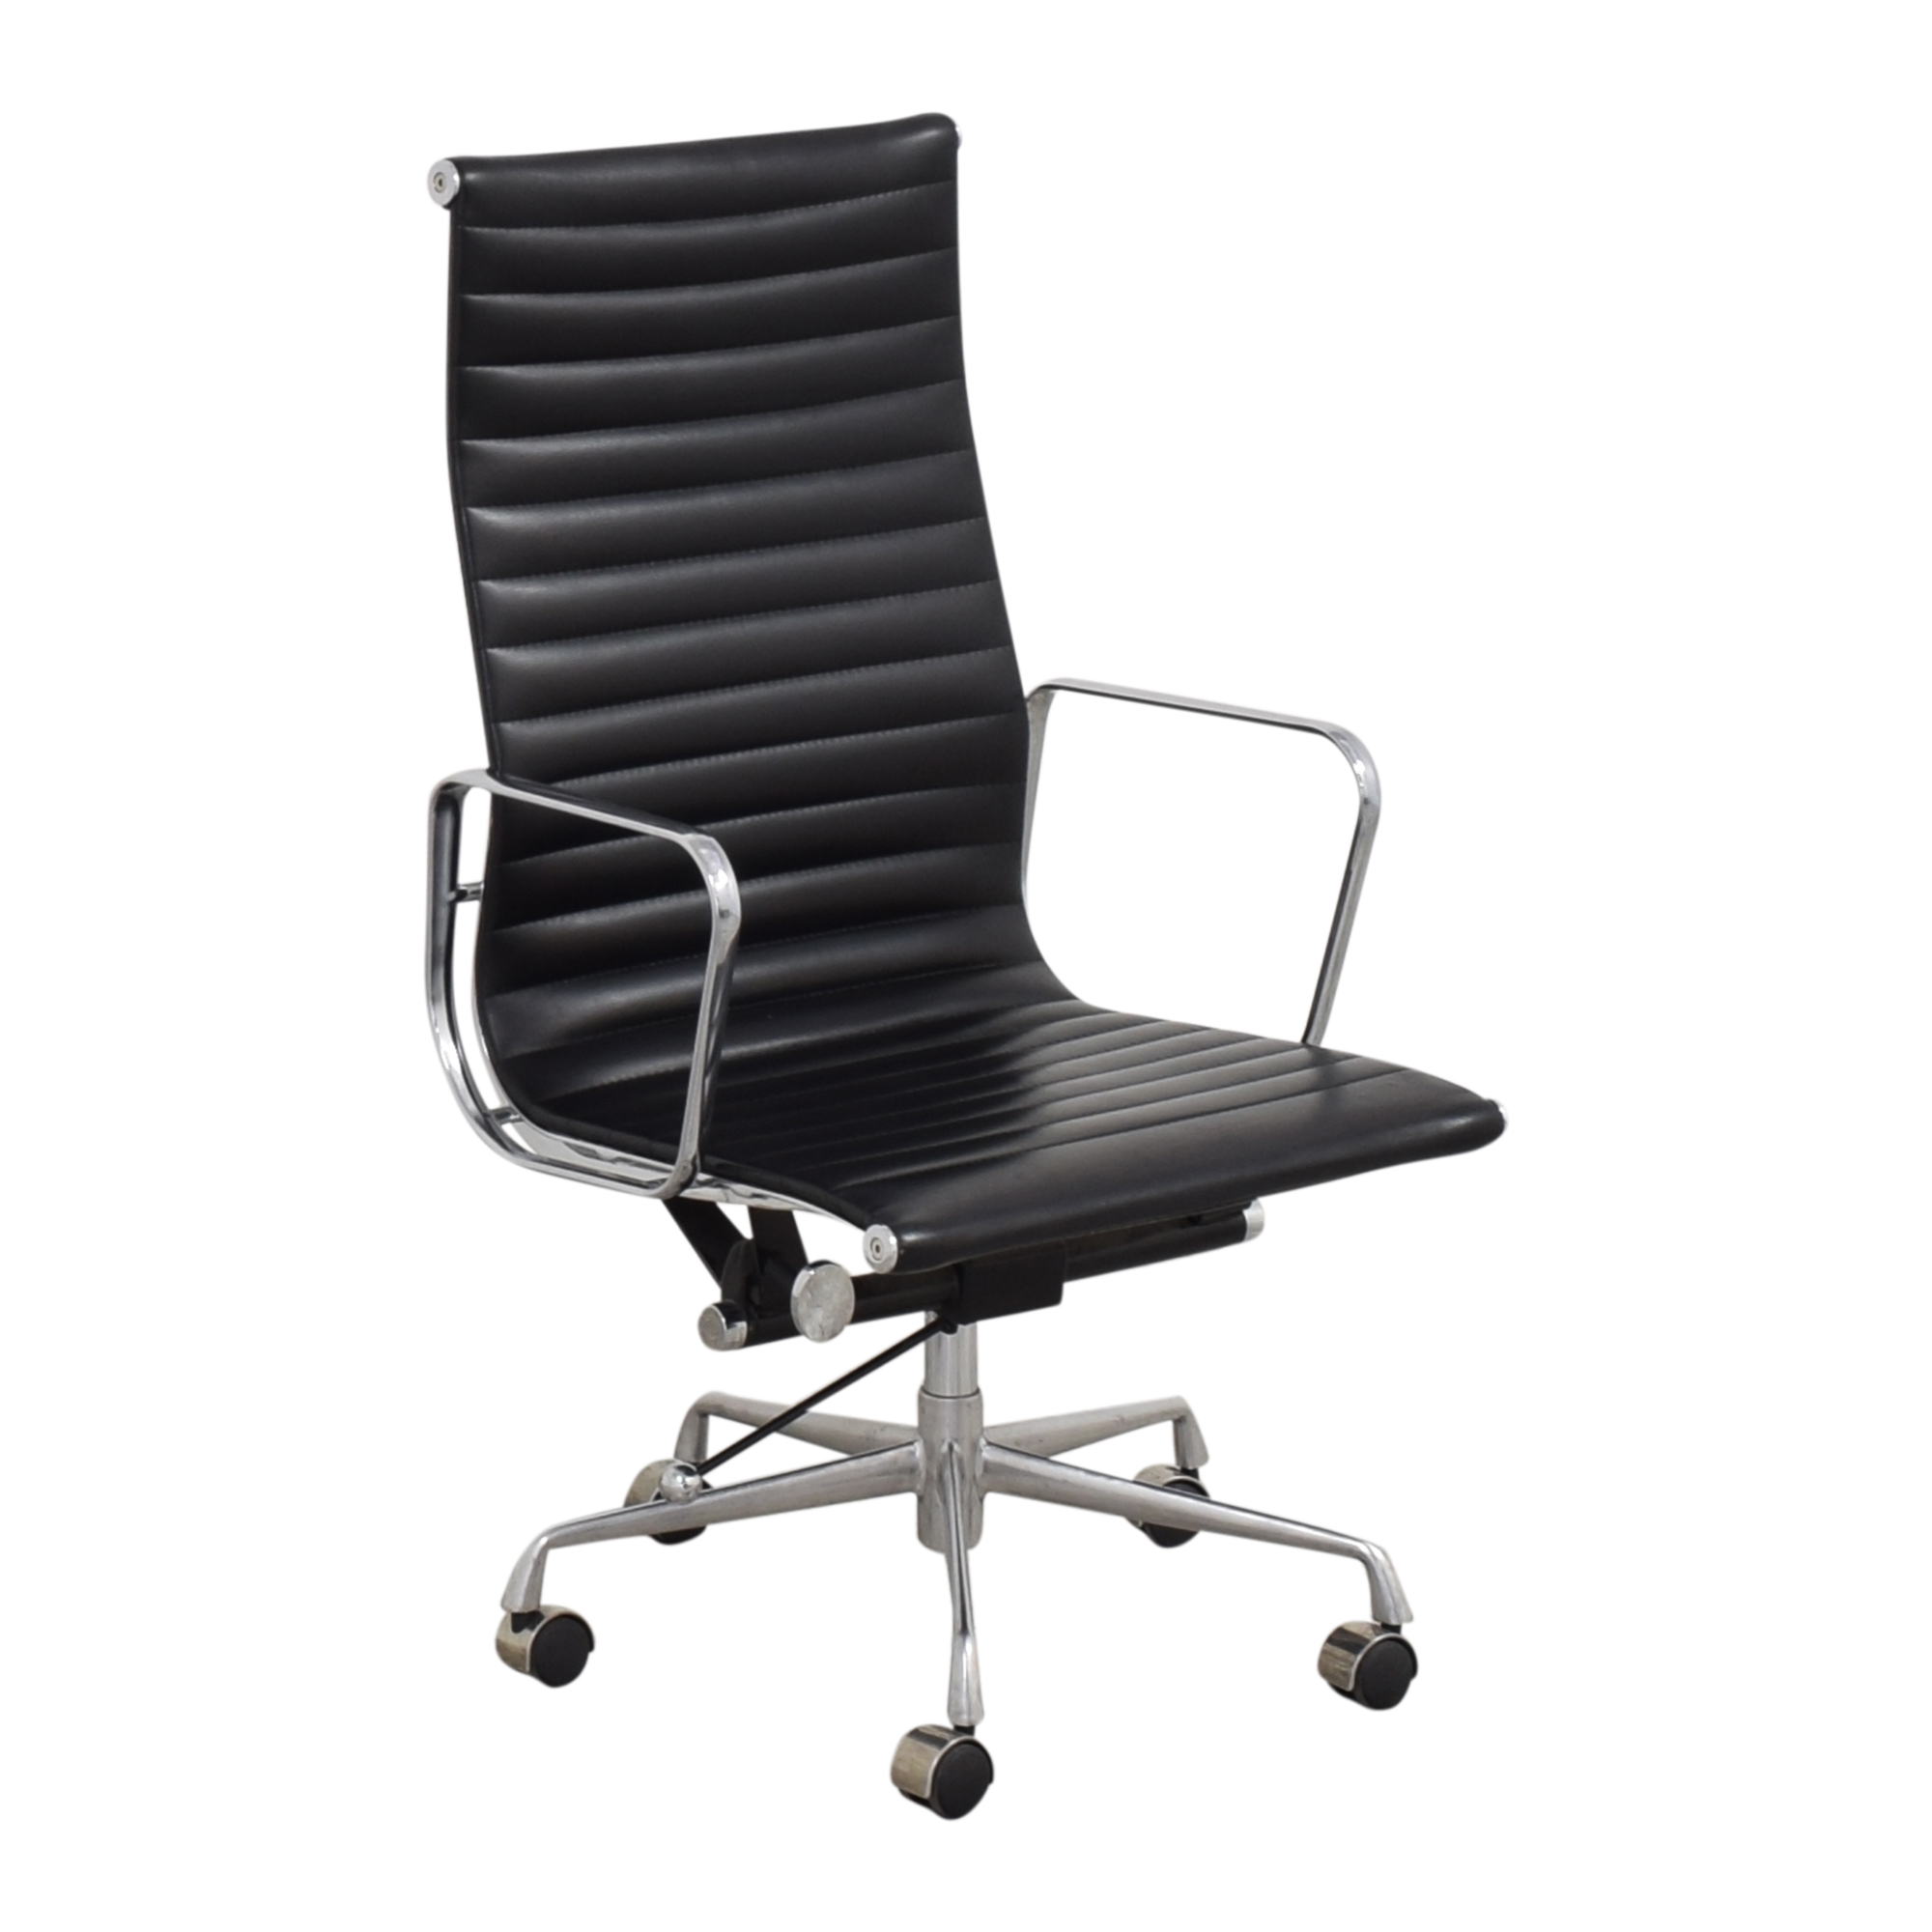 shop  Eames-Style High Back Ribbed Office Chair online